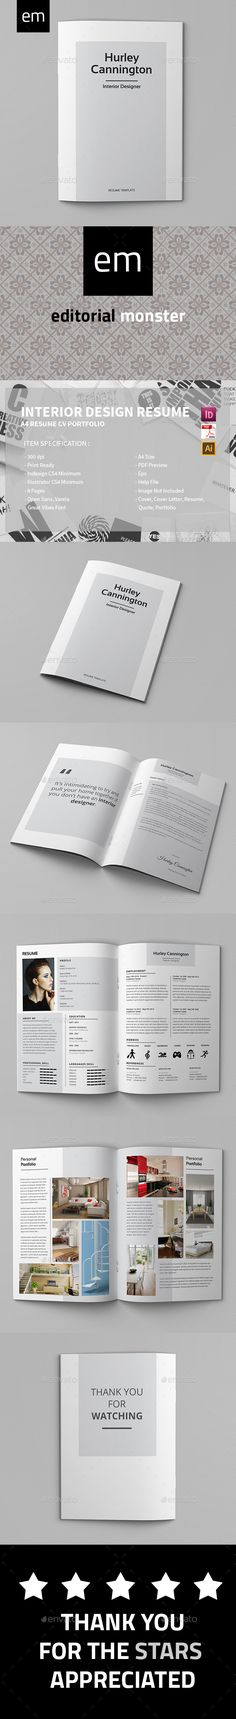 Claire Callis    Interior Design Resume Design Pinterest - interior design resumes